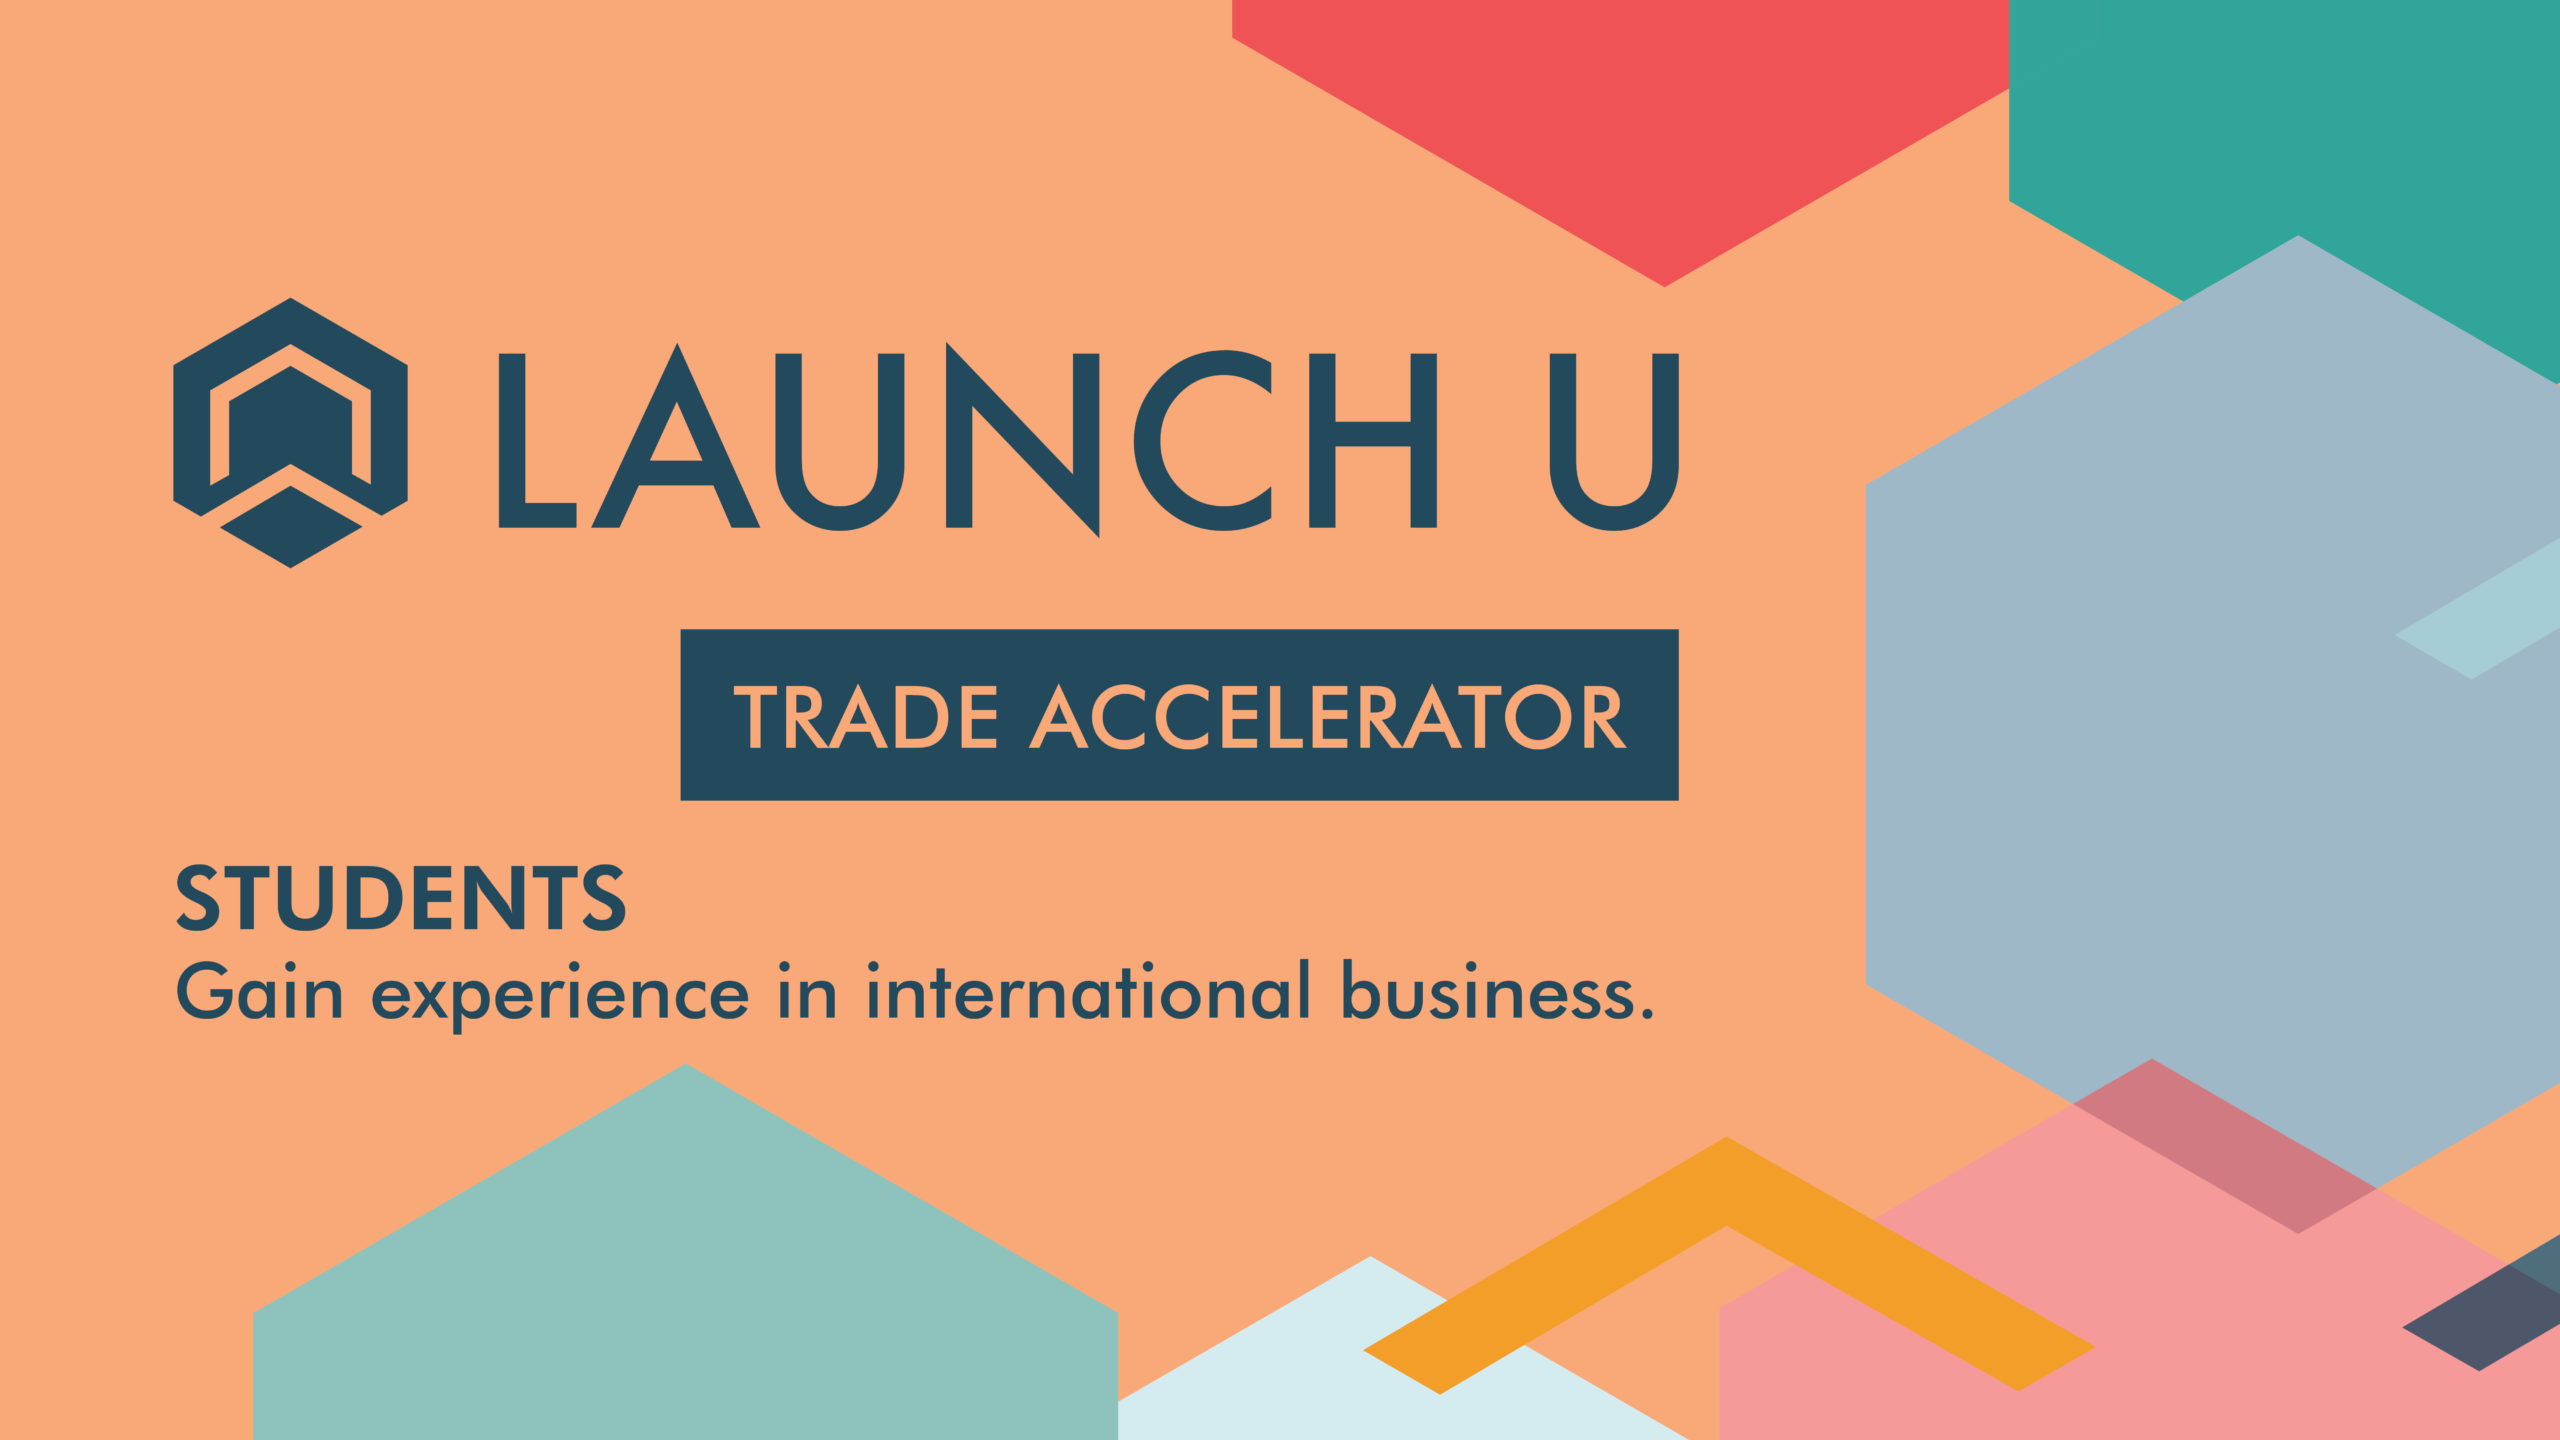 Launch U Business Accelerator Program